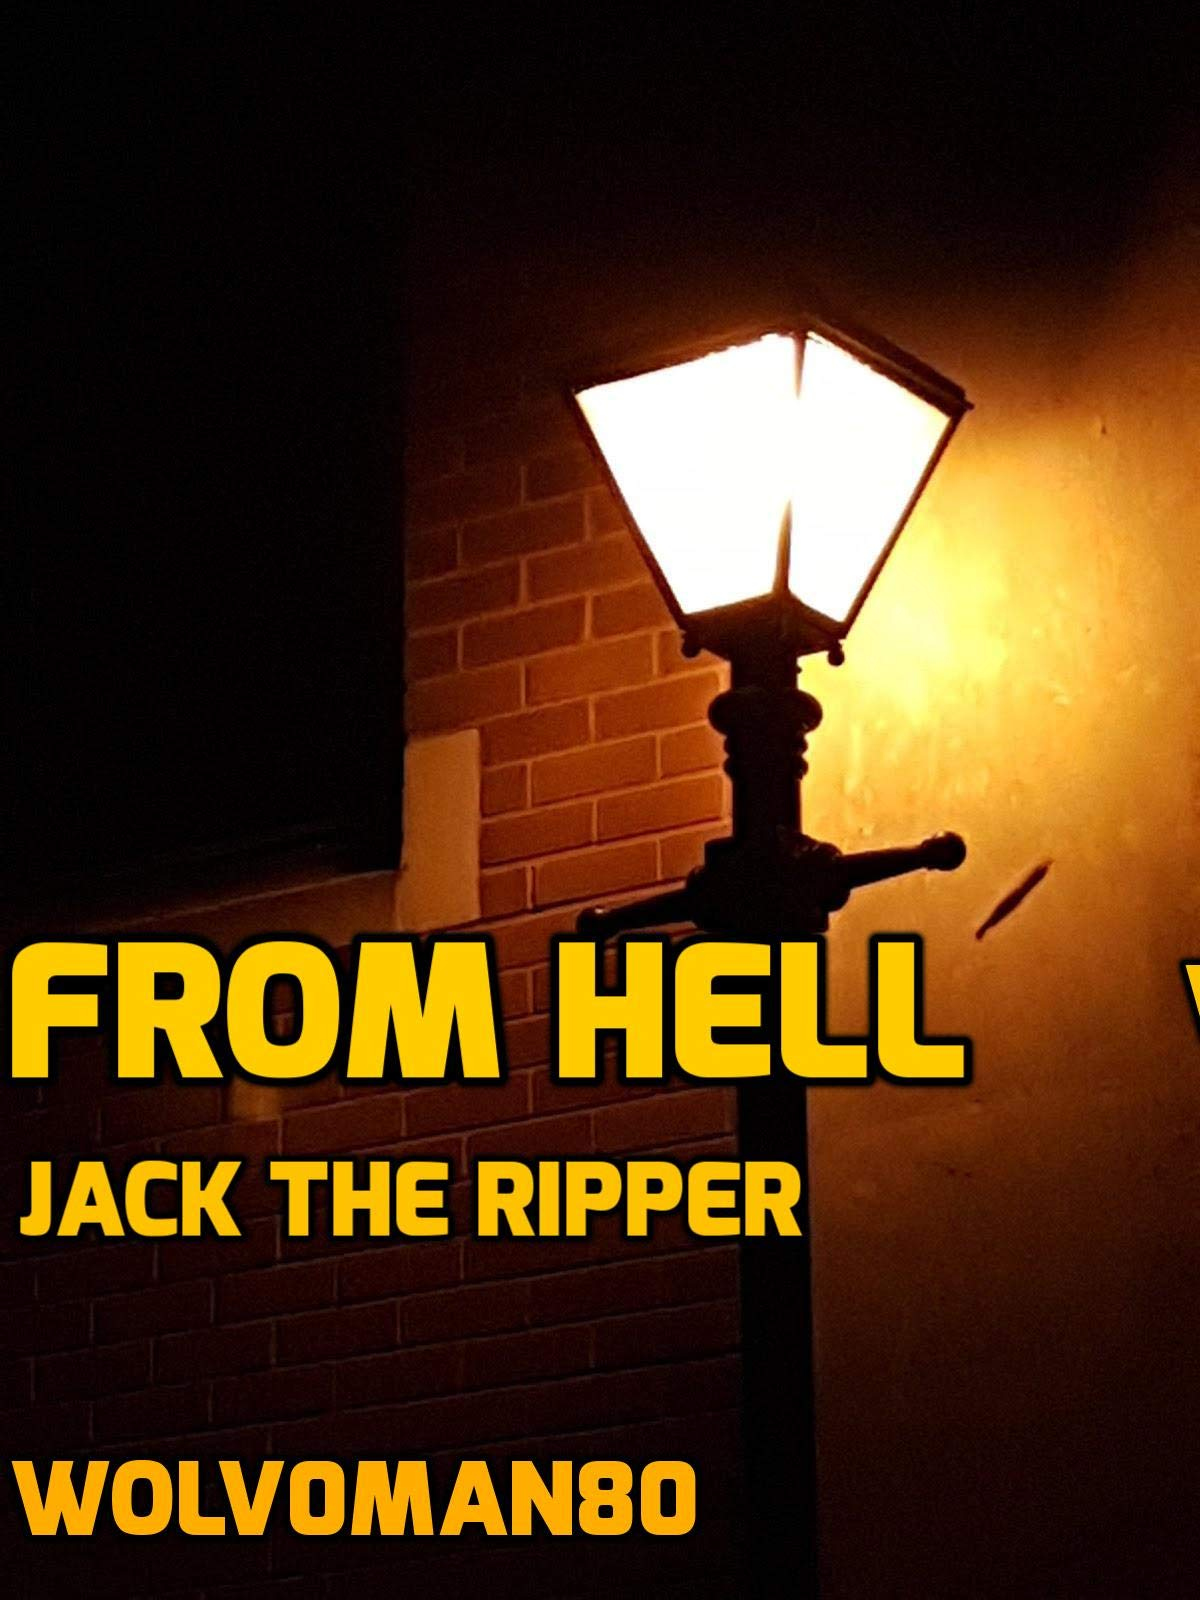 From Hell : Jack the Ripper on Amazon Prime Video UK